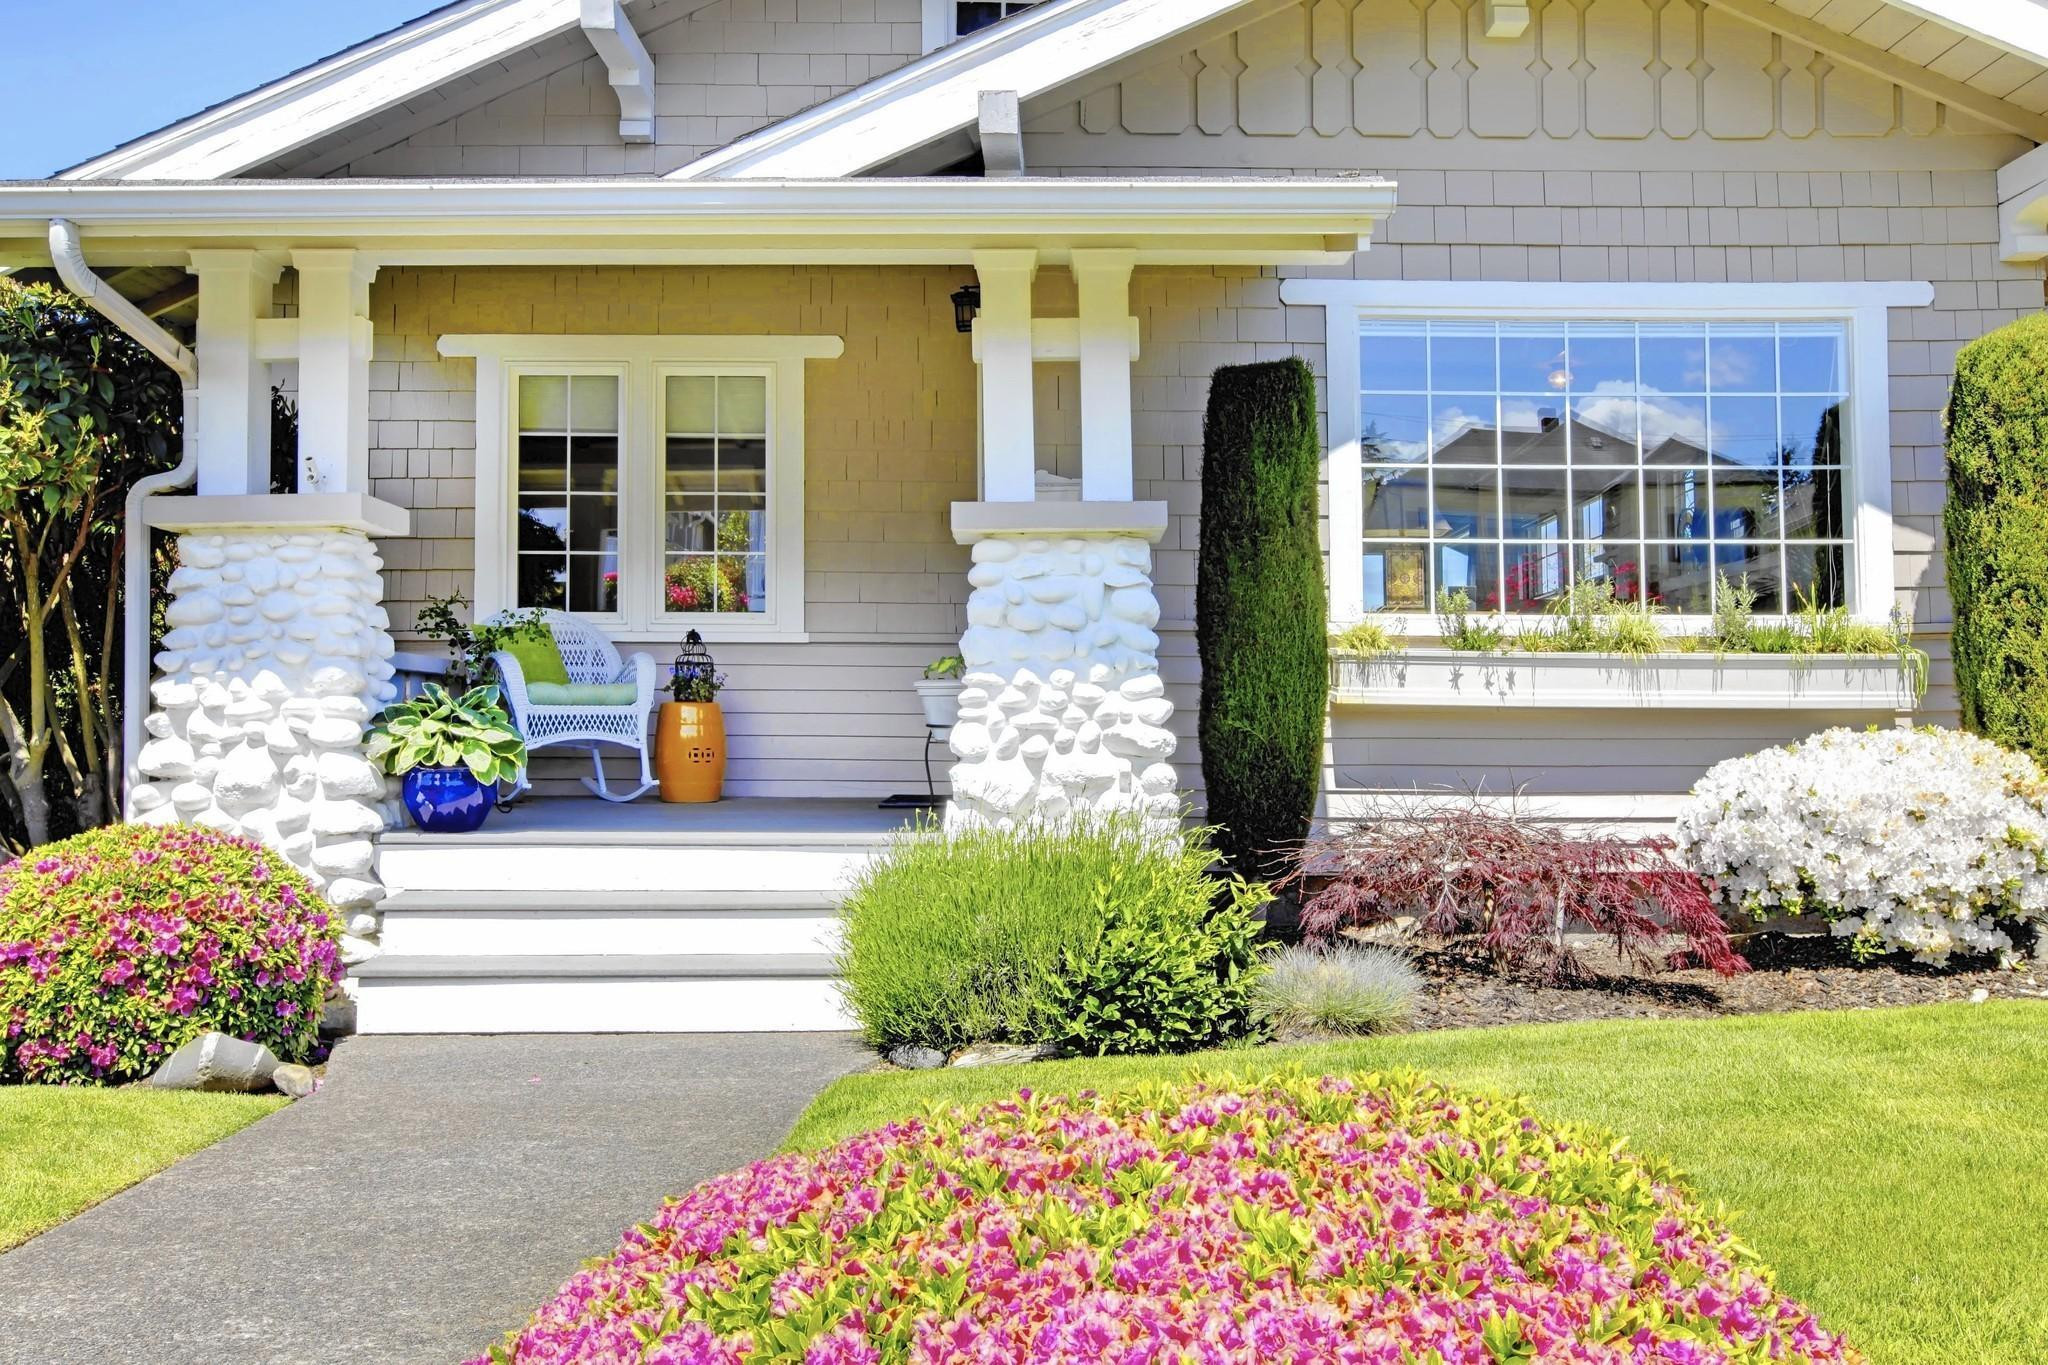 Outdoor Landscape Curb Appeal  Curb appeal Reconsider landscaping in front yard